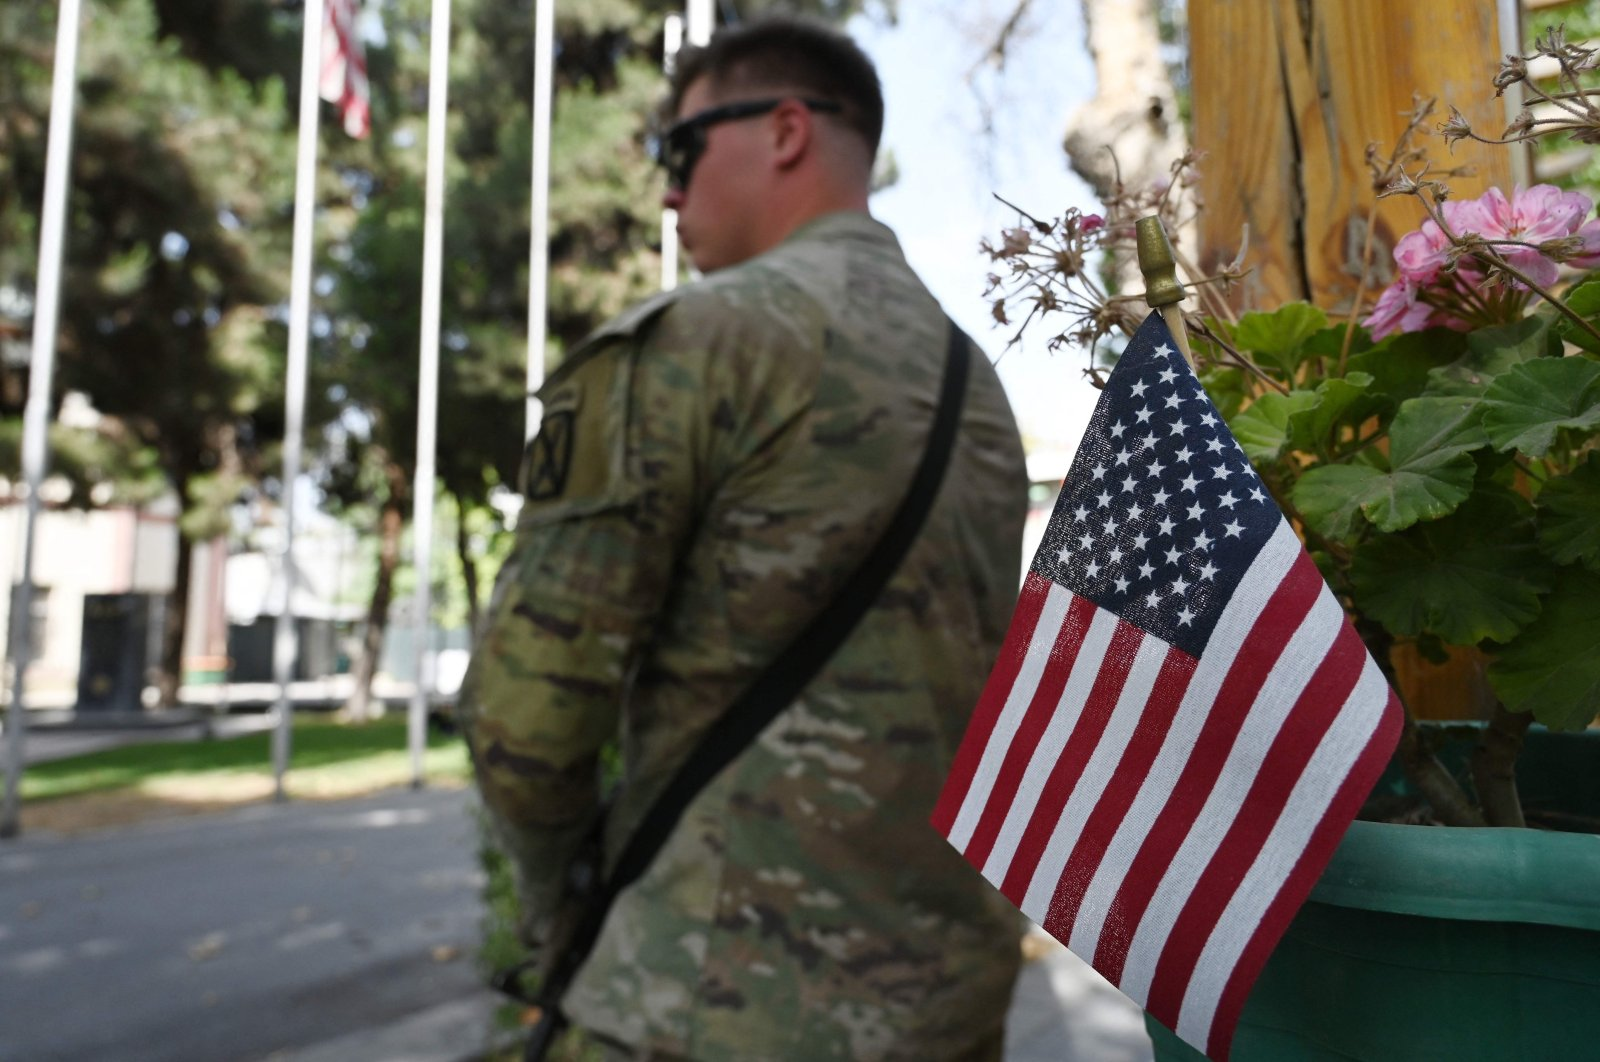 A U.S. military personnel stands guard after an official handover ceremony at the Resolute Support headquarters in the Green Zone in Kabul, Afghanistan, July 12, 2021. (AFP Photo)